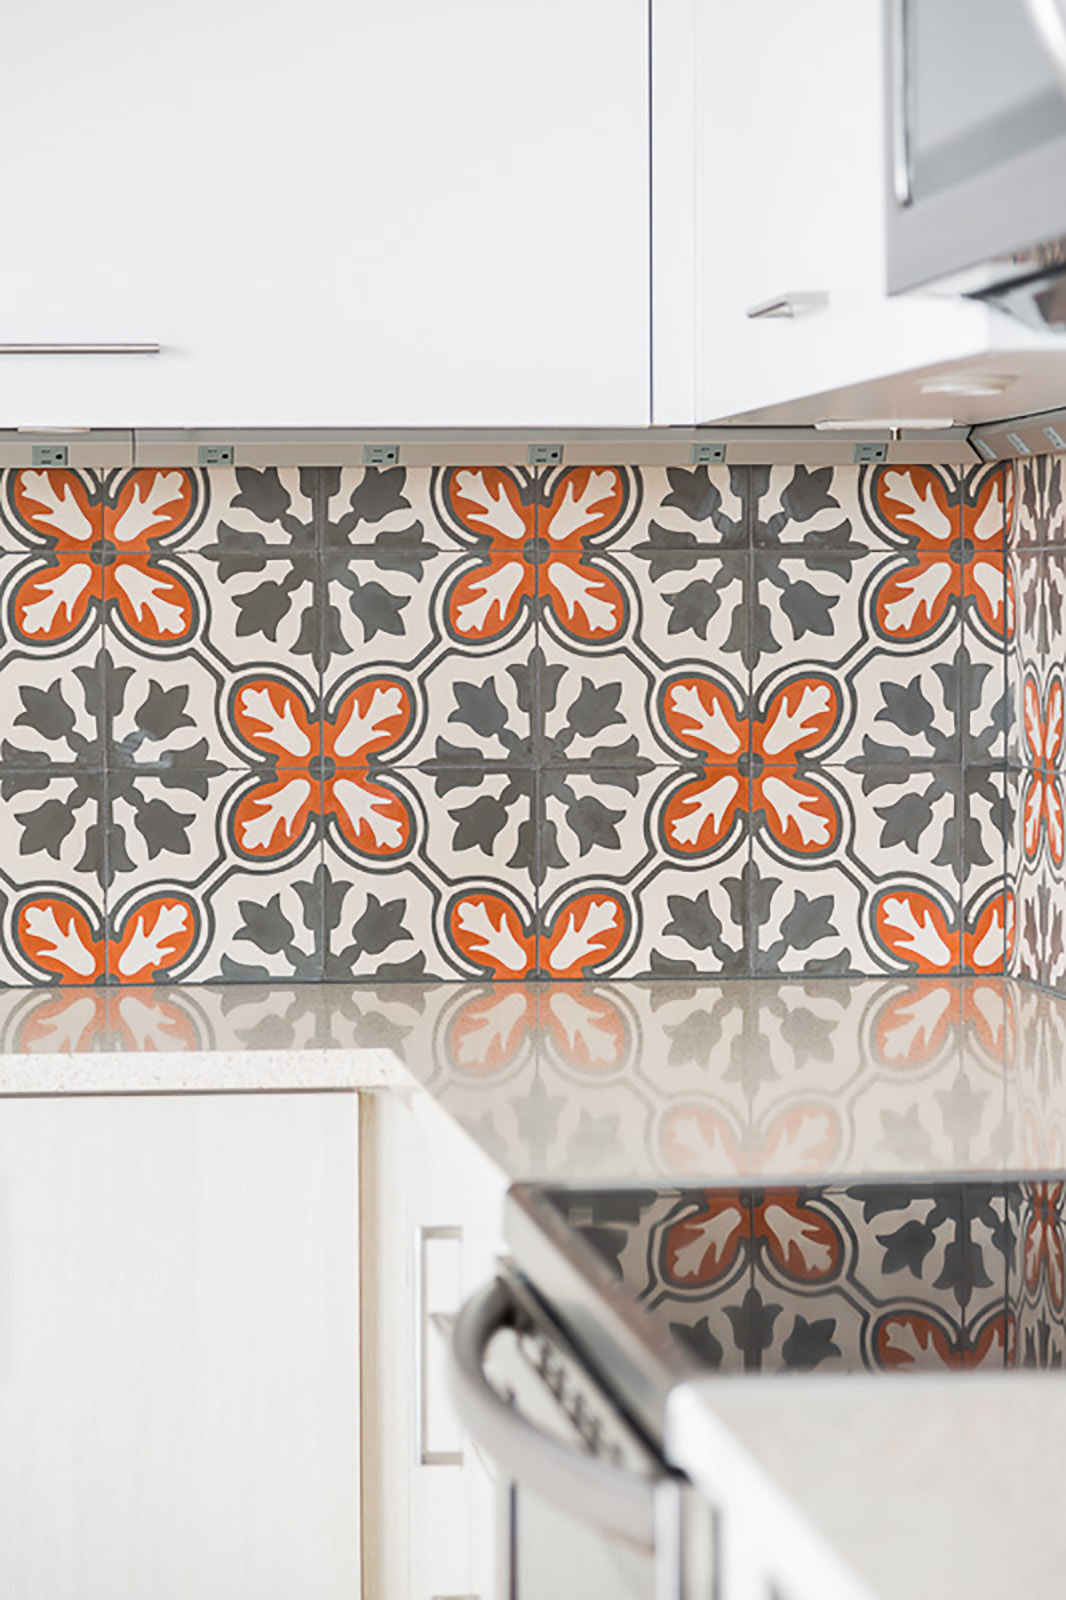 enlarged kitchen tile.jpg